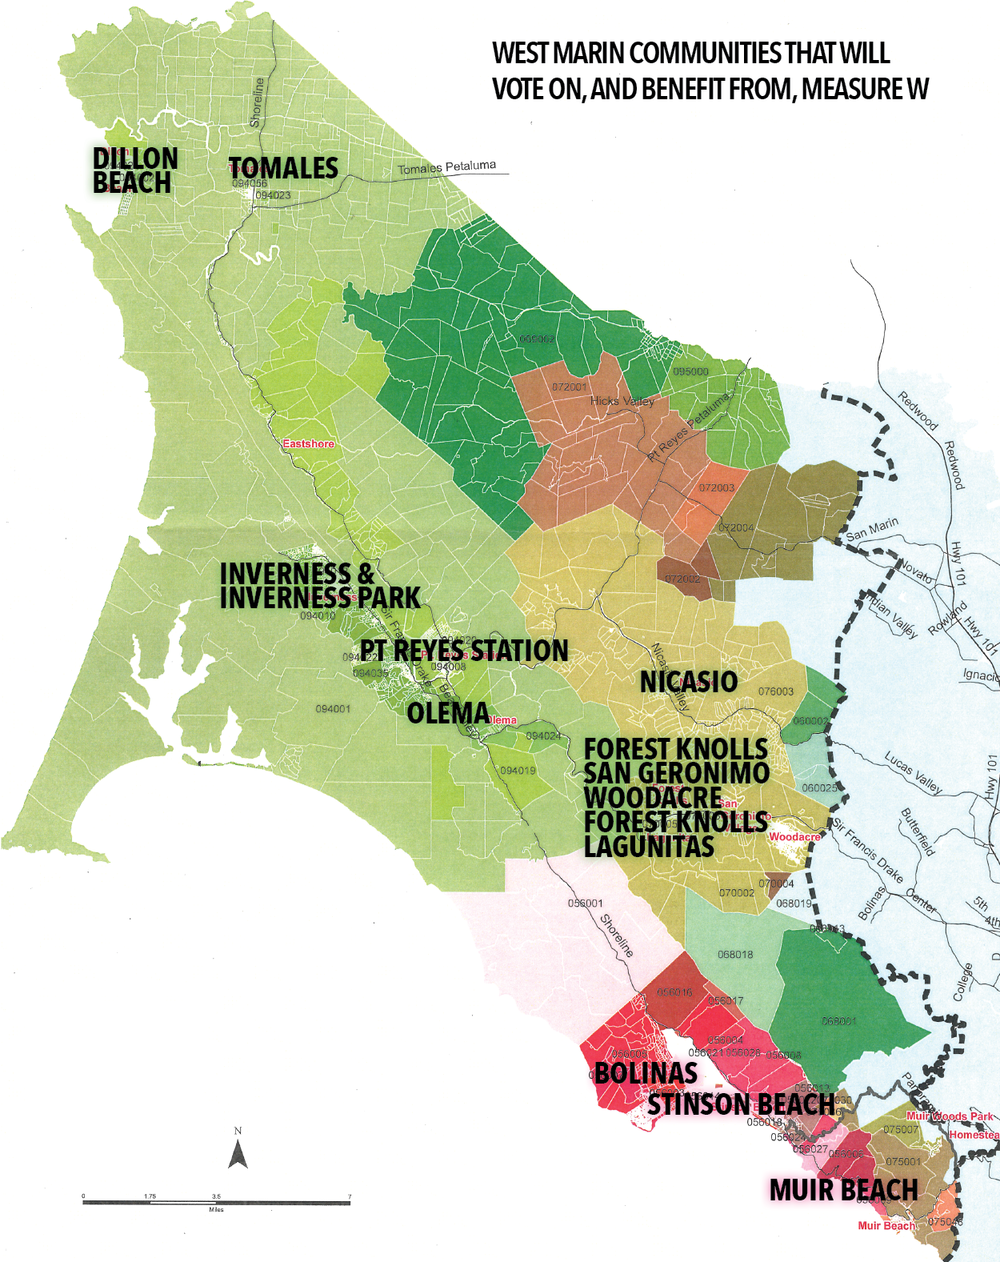 Map of West Marin Communities that will vote on, and benefit from, Measure W